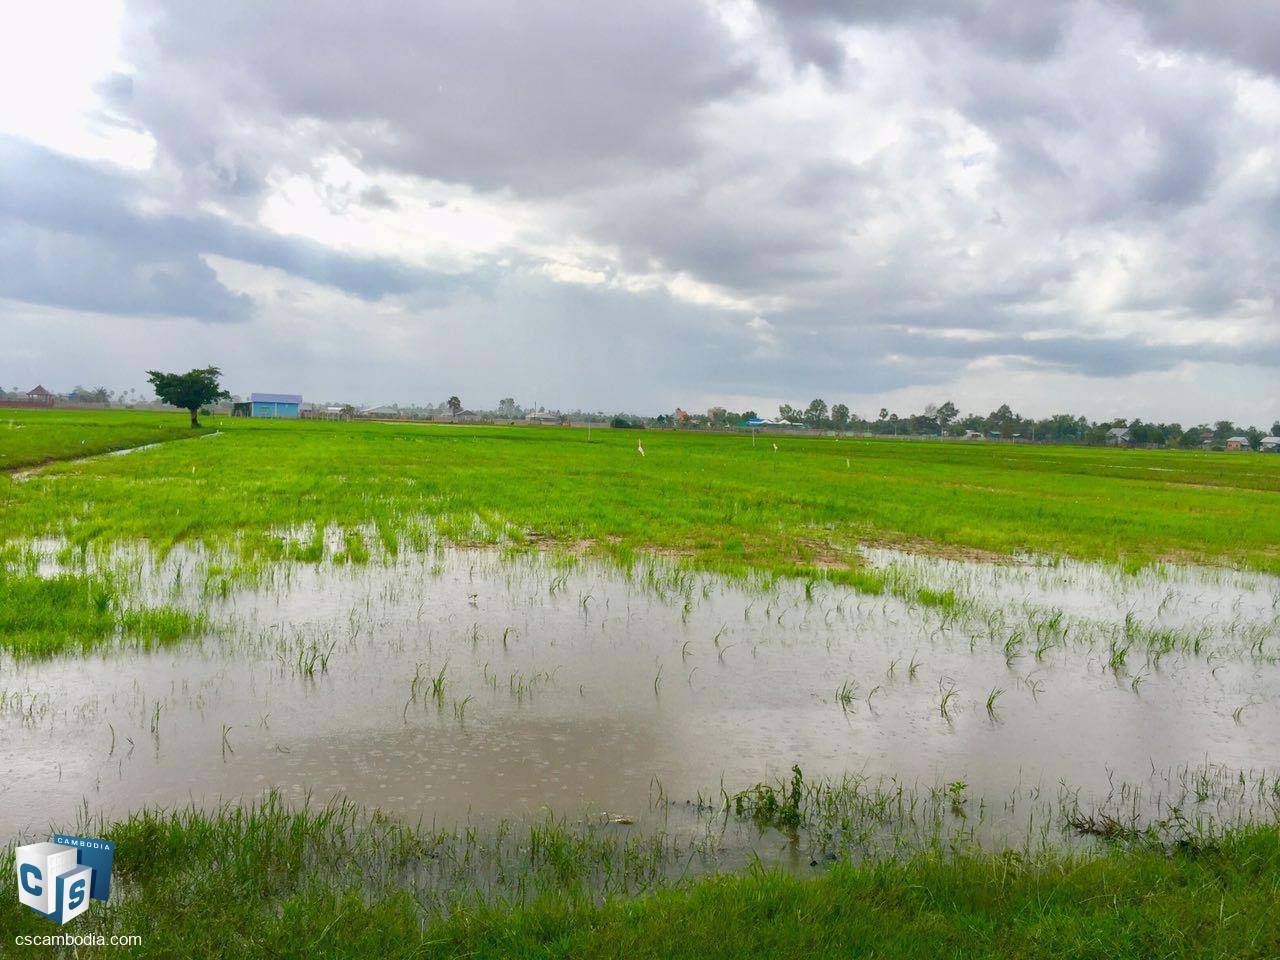 5,213 Sq M Land – For Sale – Prasat Bakong Commune – Siem Reap